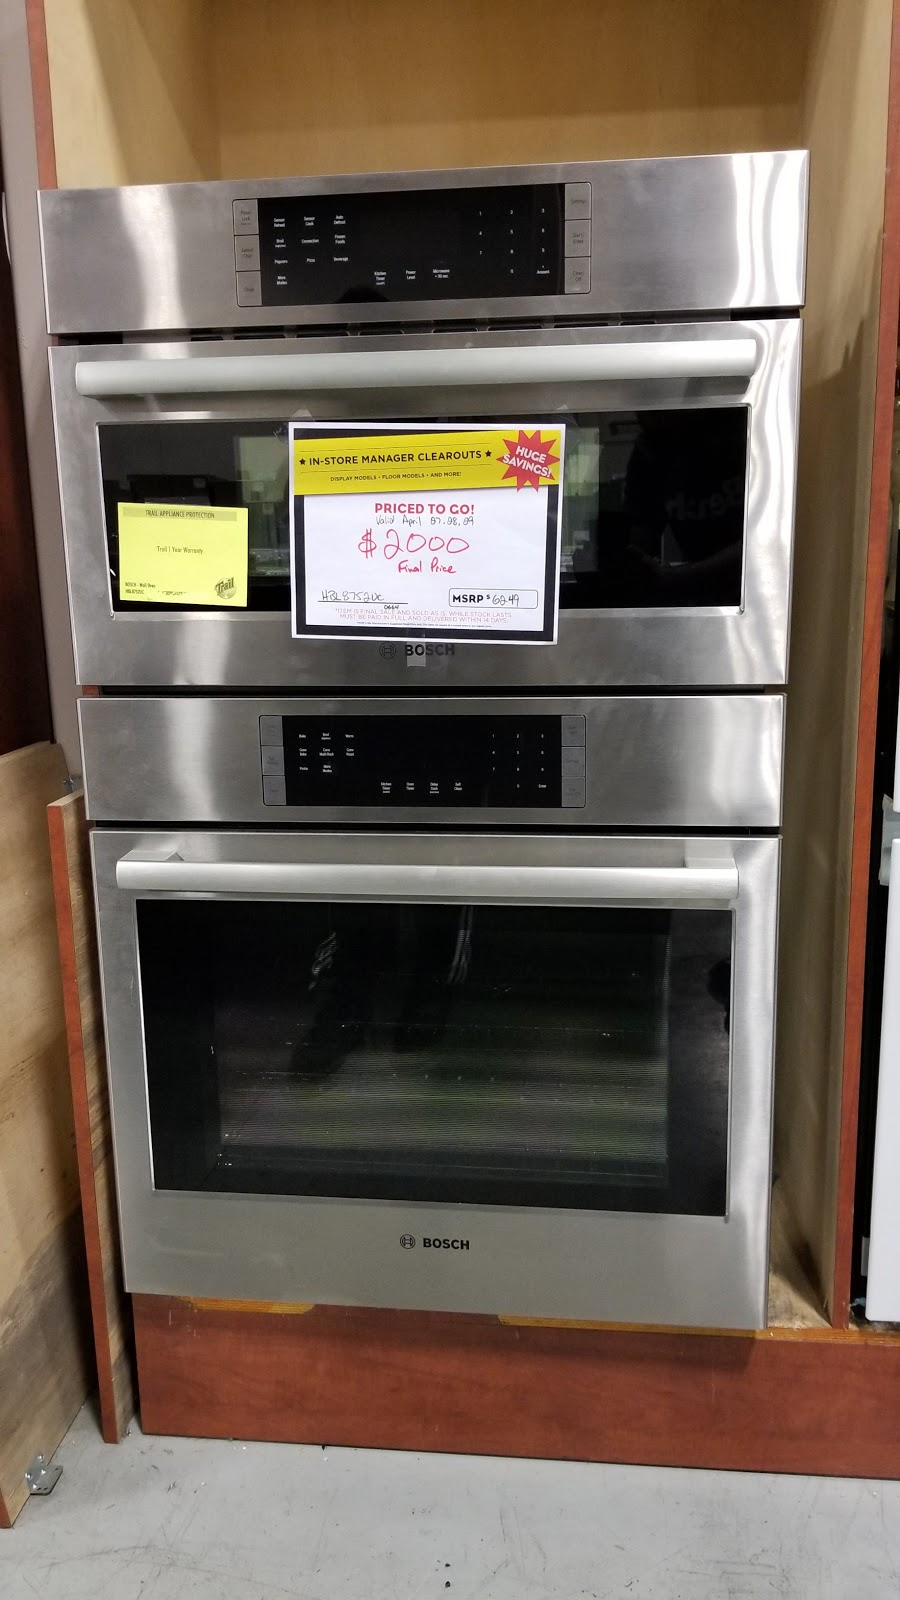 Trail Appliances - Annacis Island Clearance Centre | home goods store | 820 Cliveden Pl #10, Delta, BC V3M 6C7, Canada | 6047773316 OR +1 604-777-3316